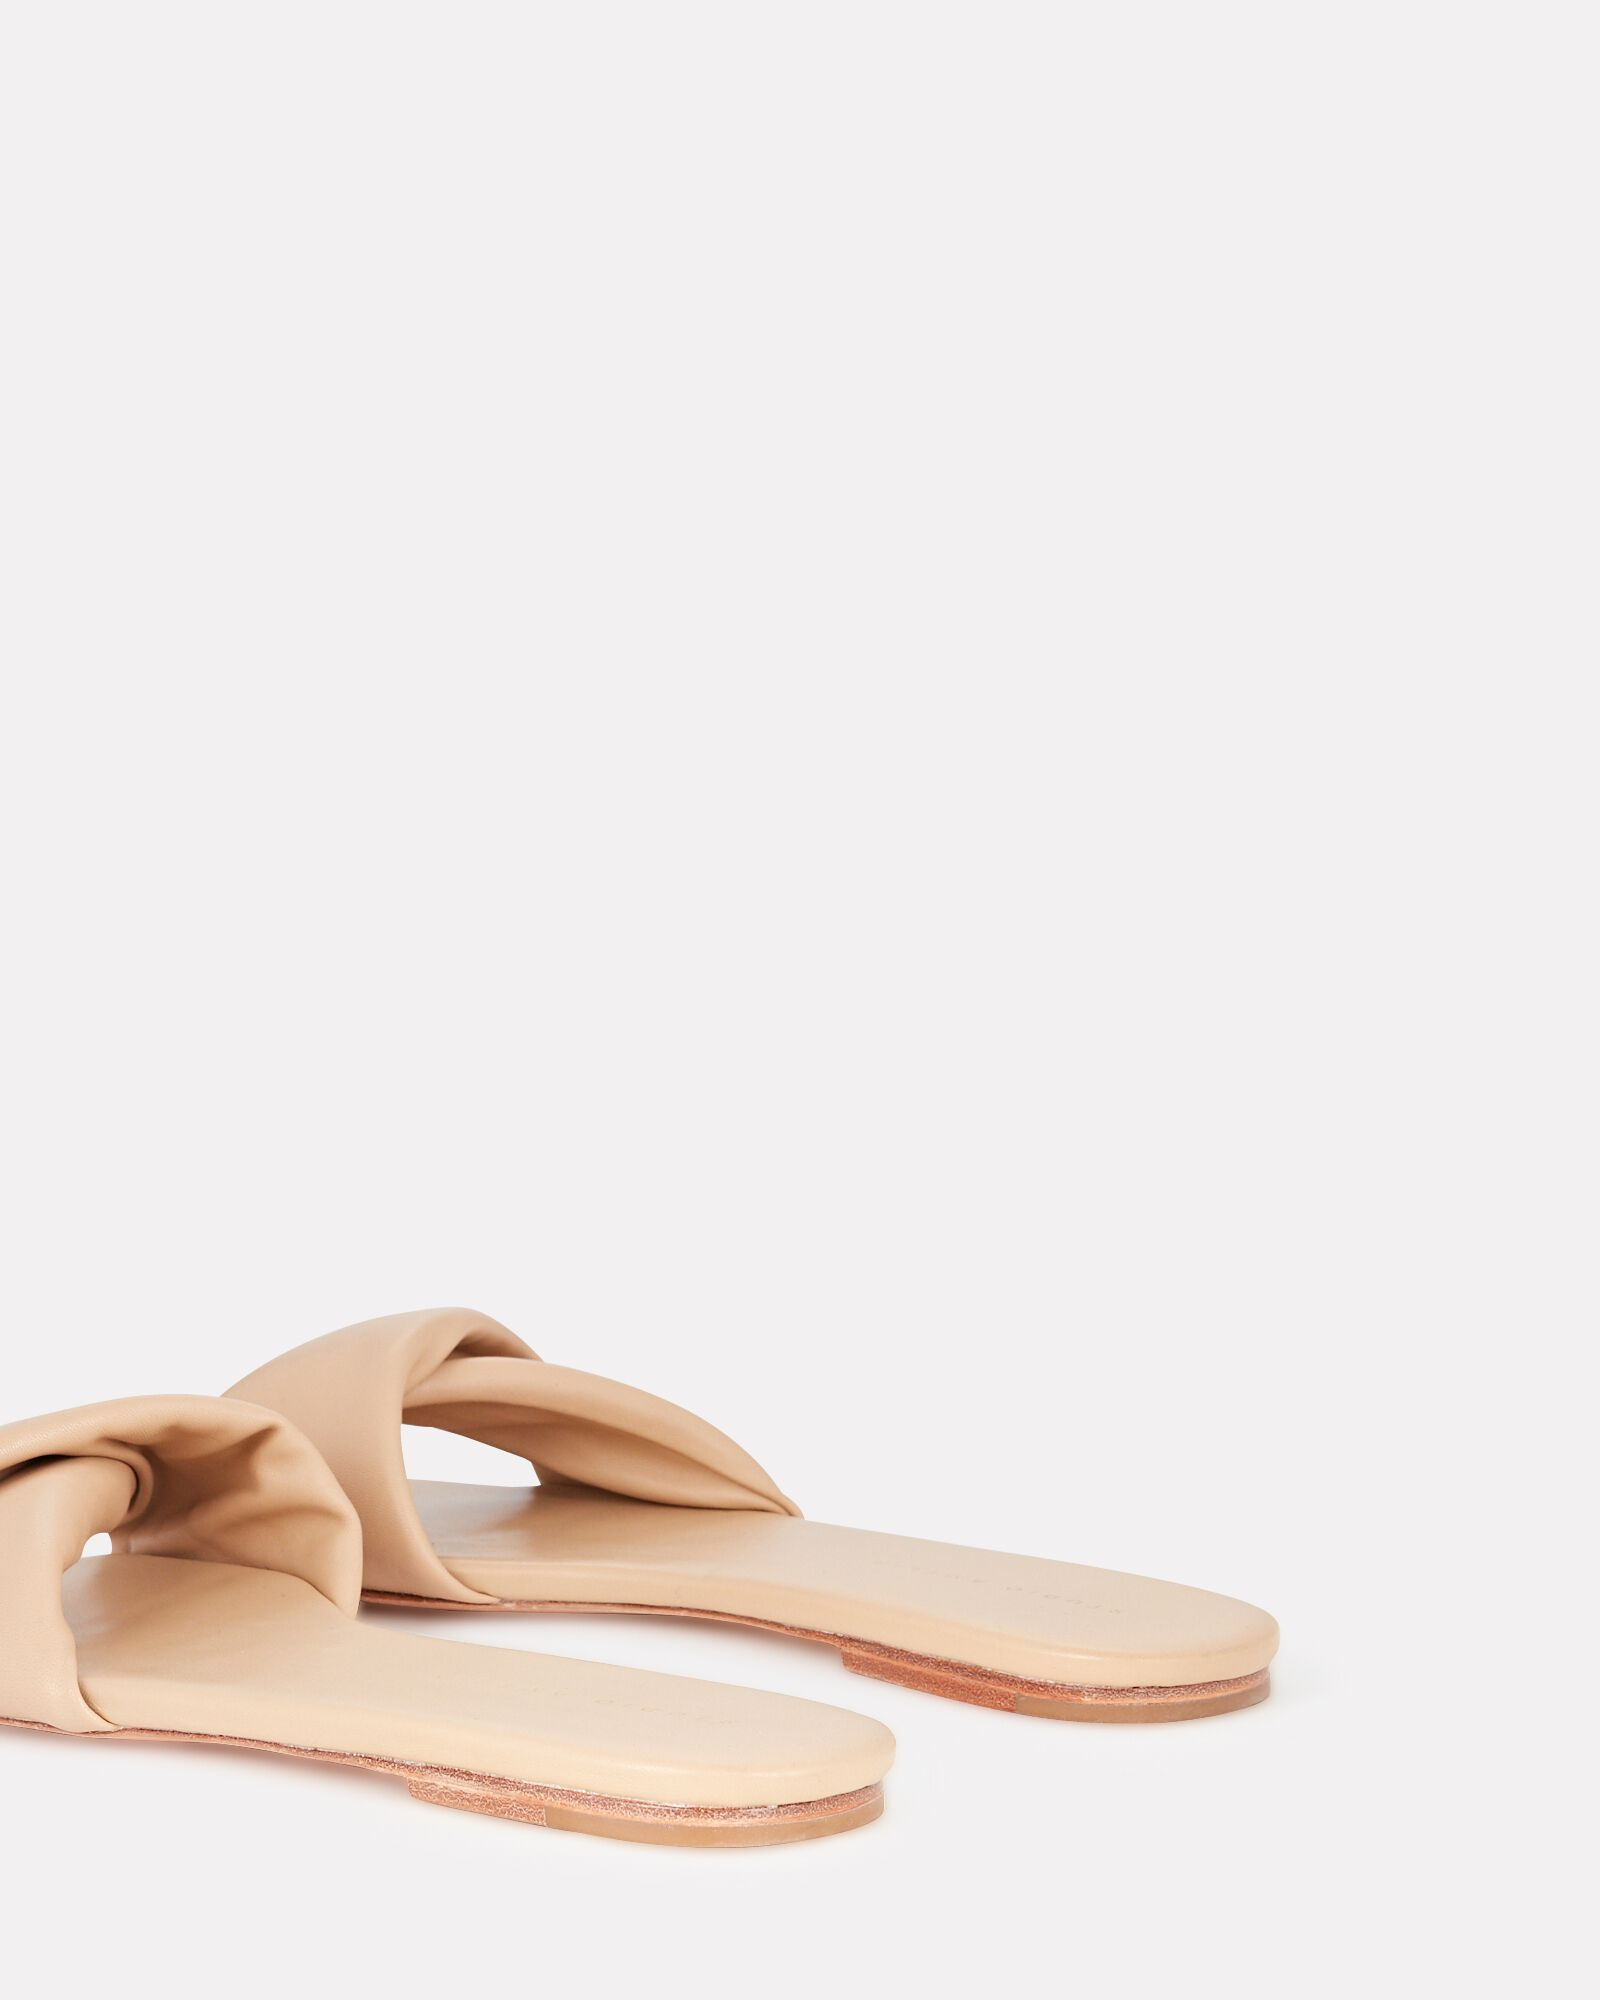 3.31 Twisted Leather Slide Sandals, BEIGE, hi-res